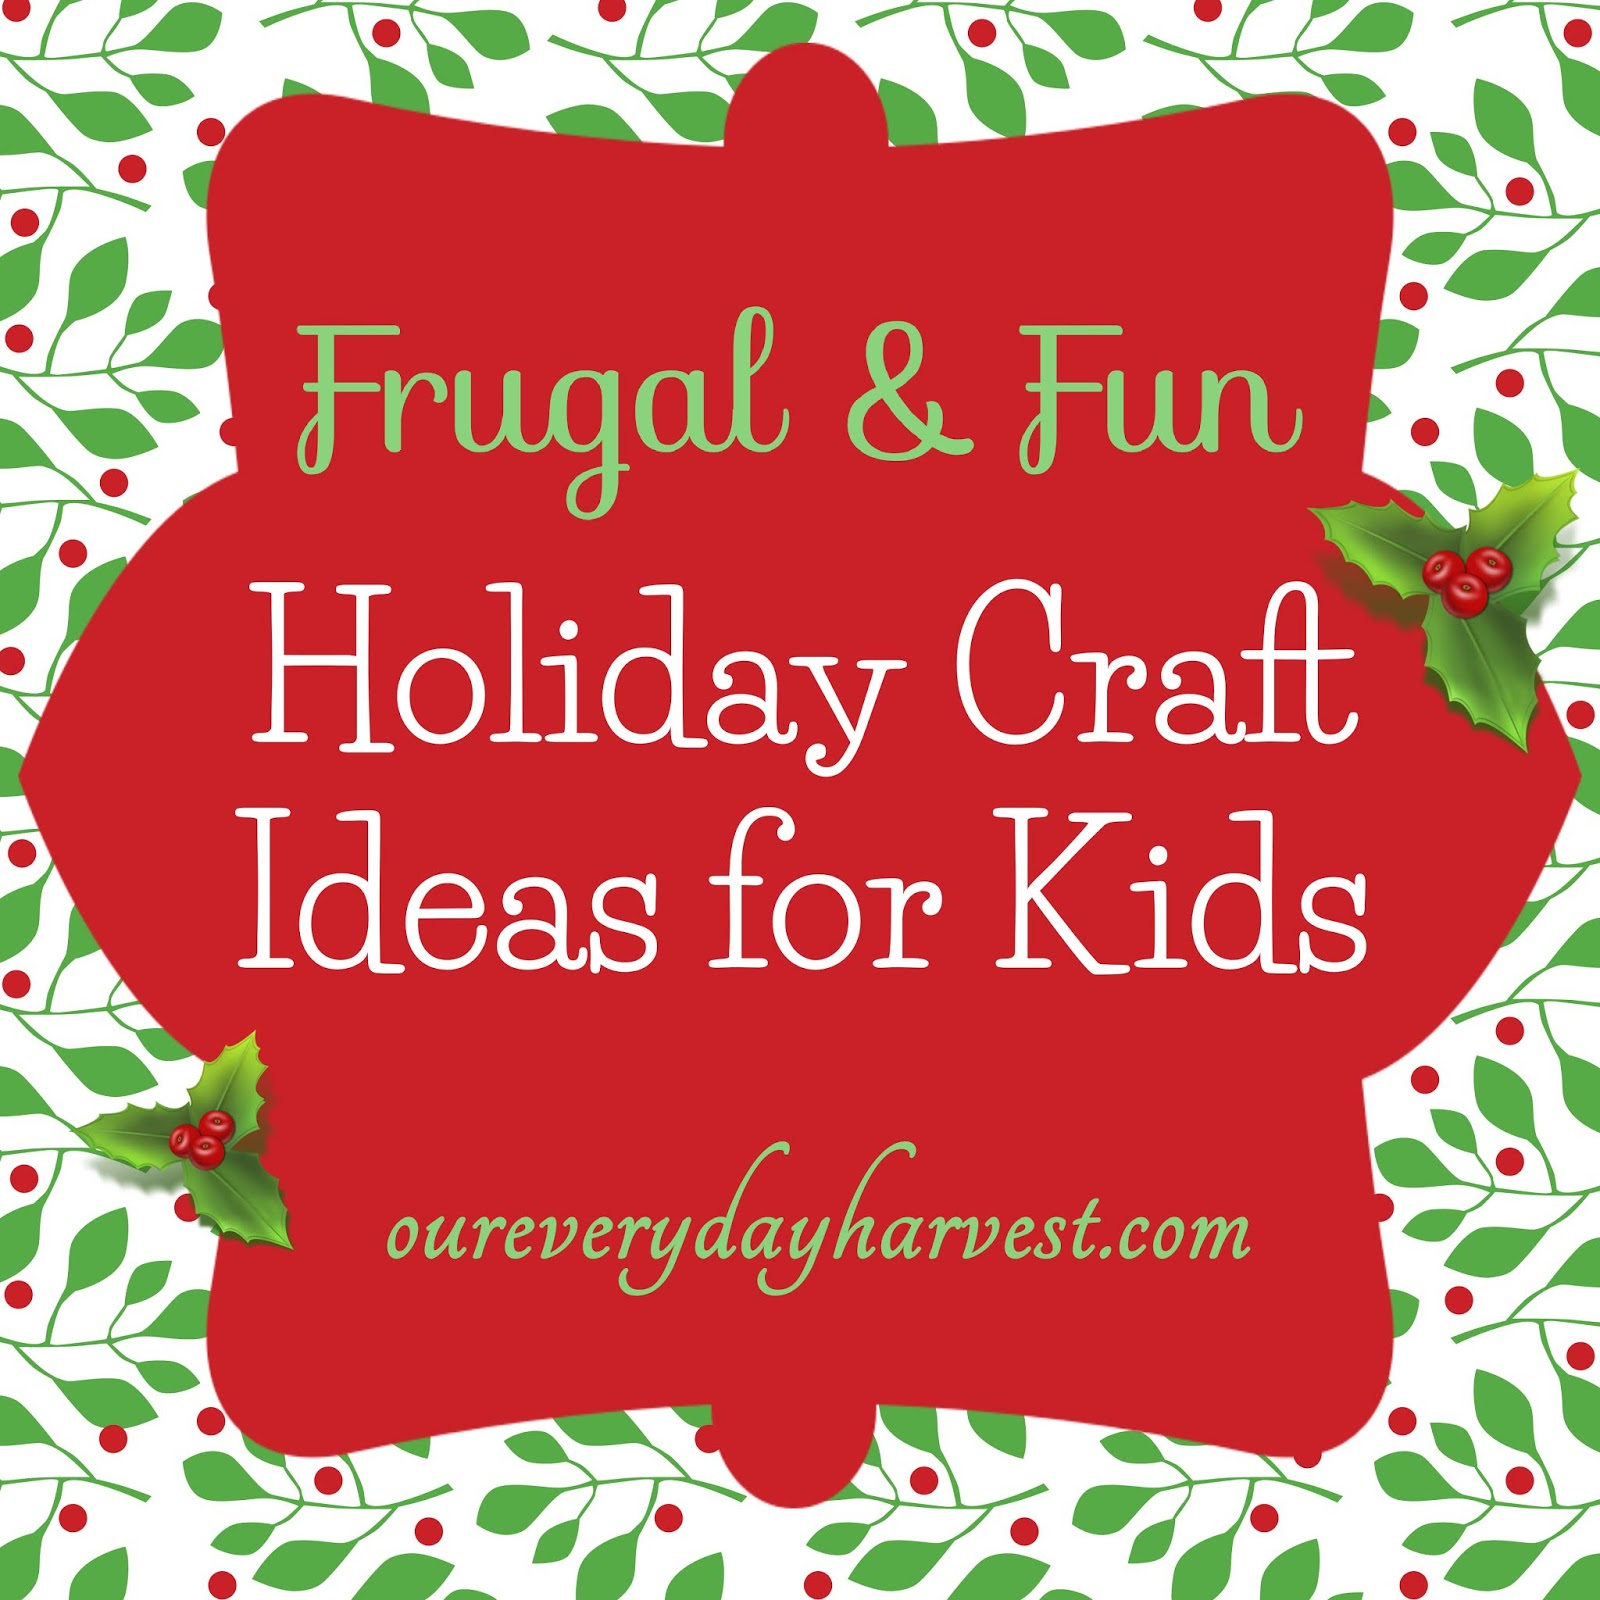 Frugal \u0026 Fun Holiday Craft Ideas for Kids   Our Everyday Harvest [ 1600 x 1600 Pixel ]